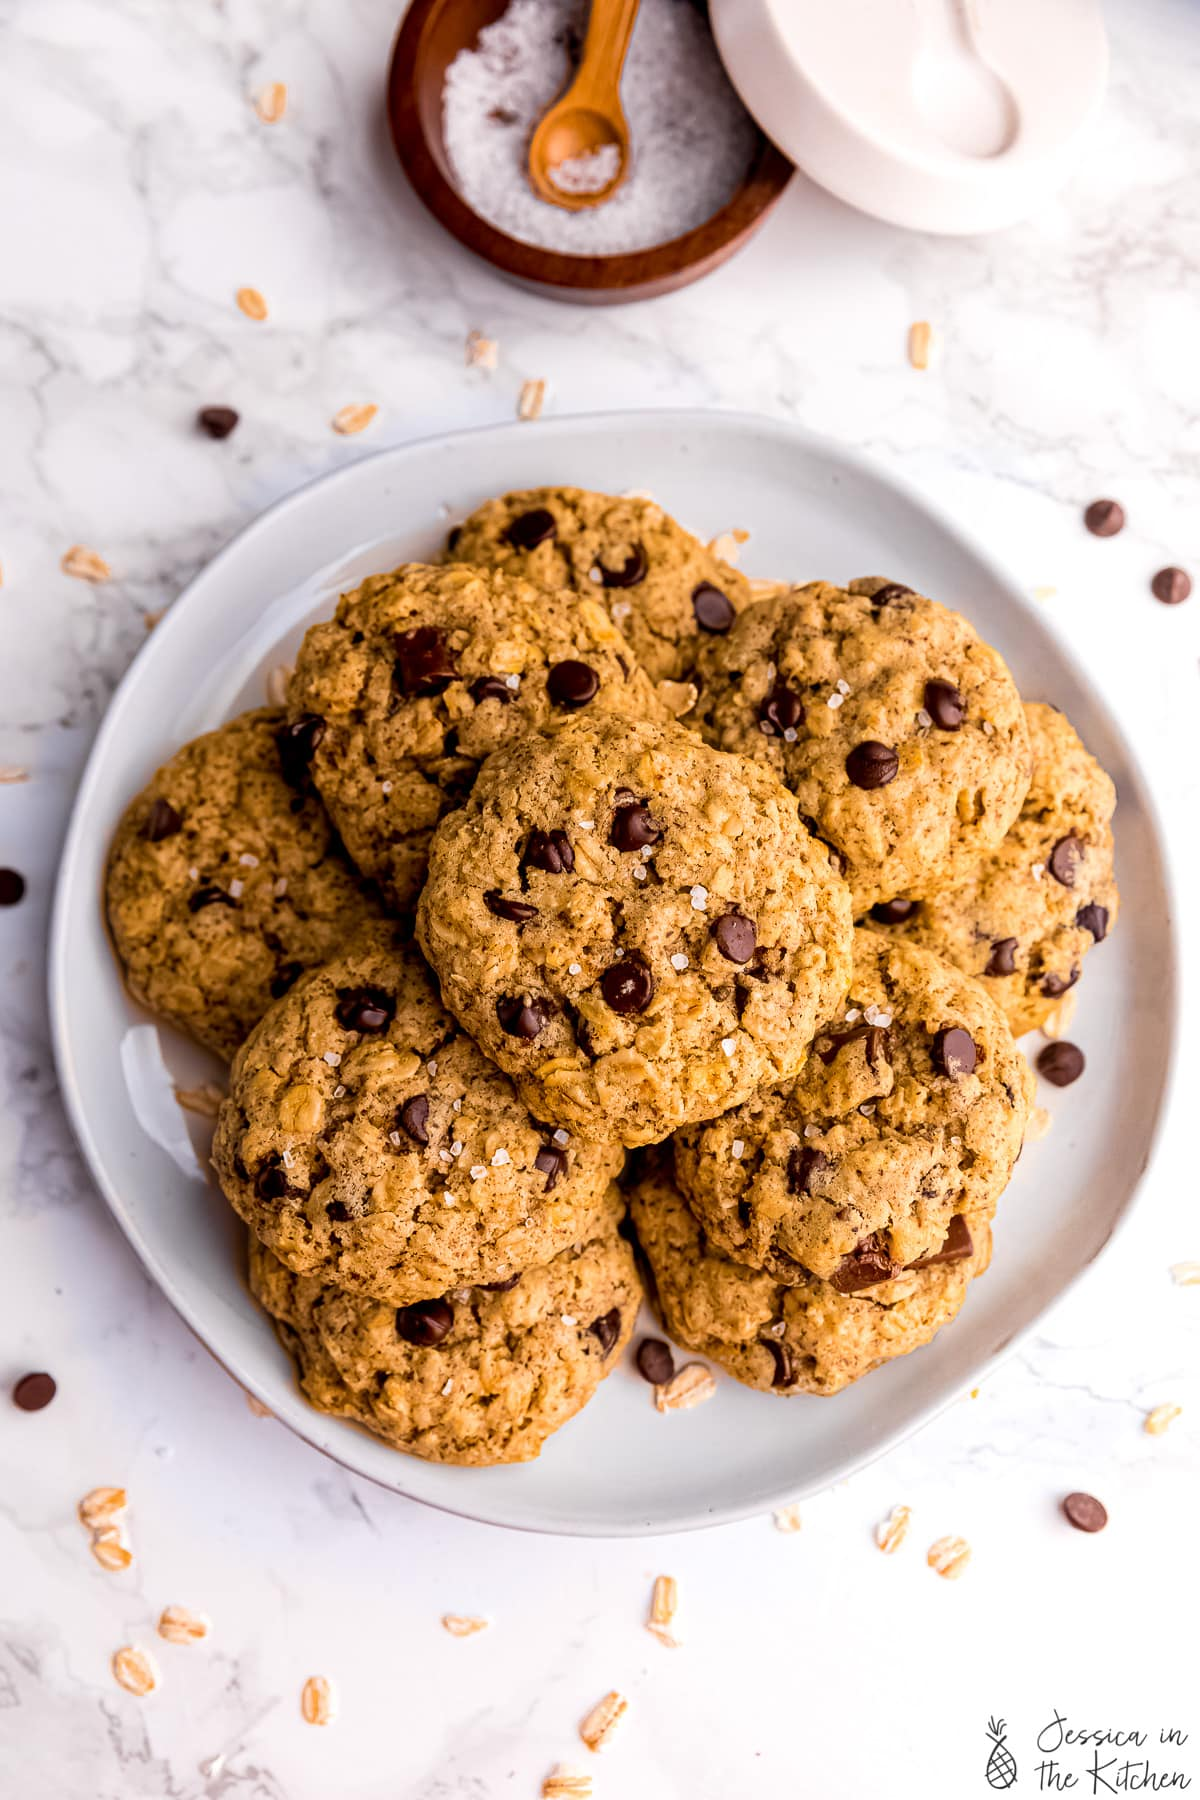 Top down view of oatmeal chocolate chip cookies on a plate with a pot of salt on the side.